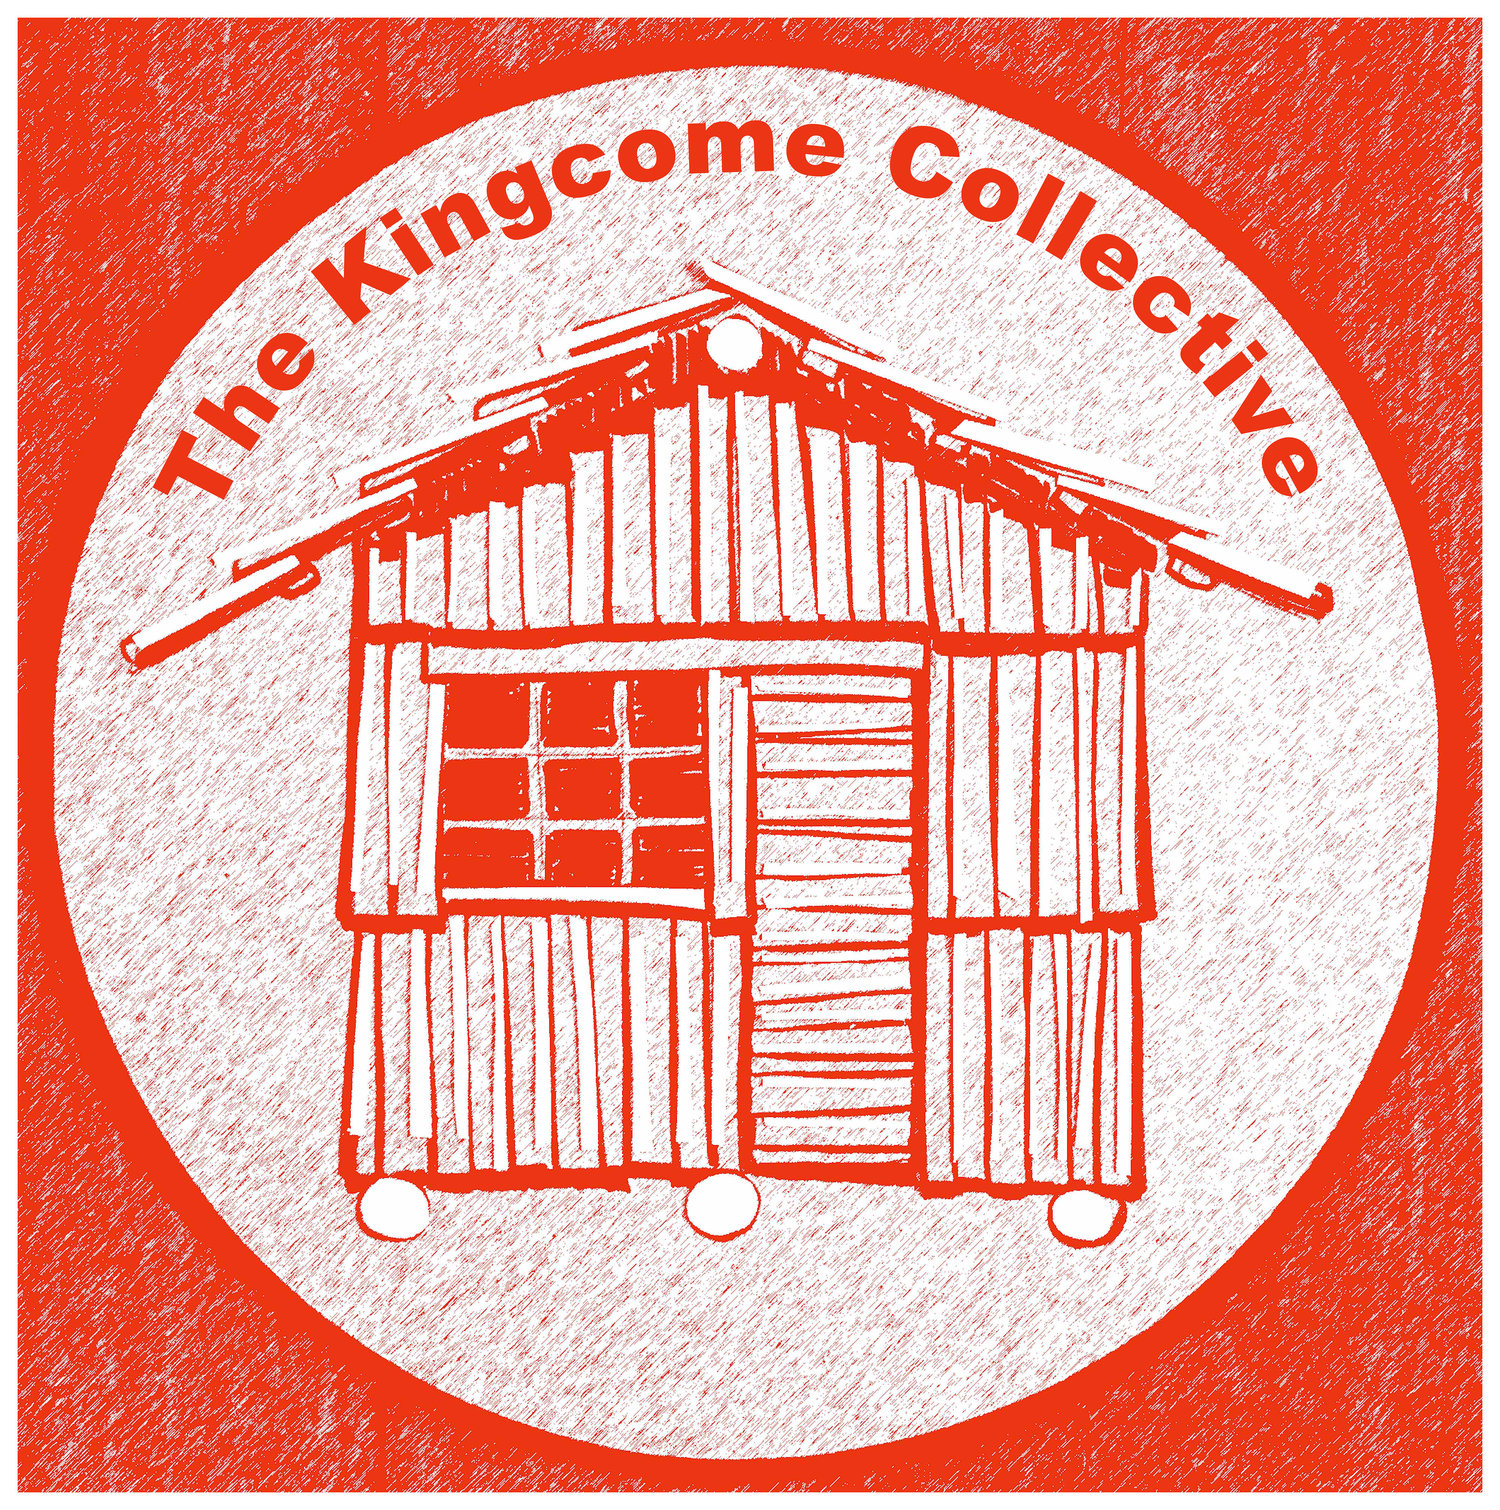 The Kingcome Collective